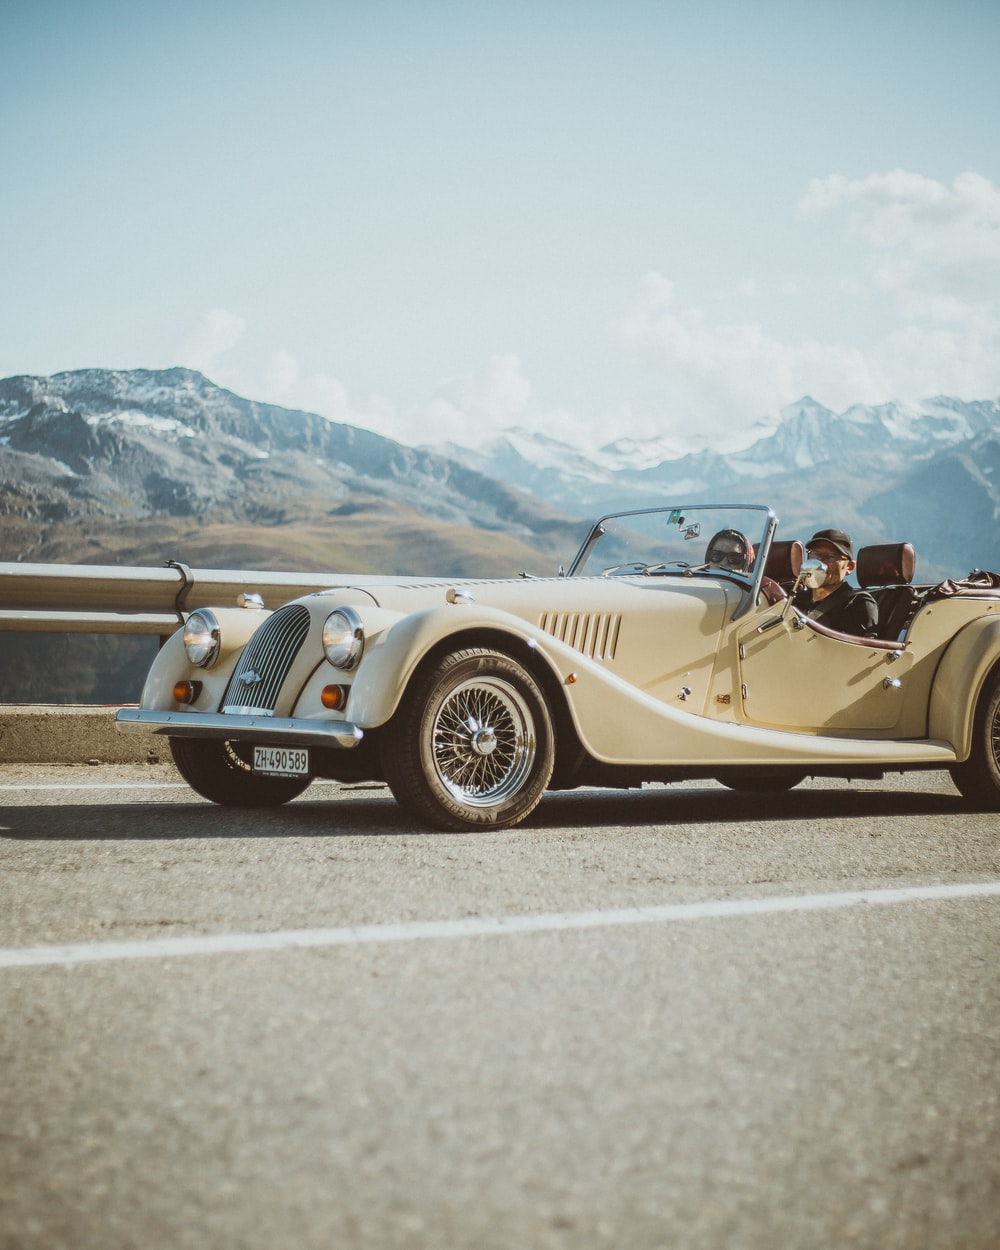 gold convertible coupe on road during daytime